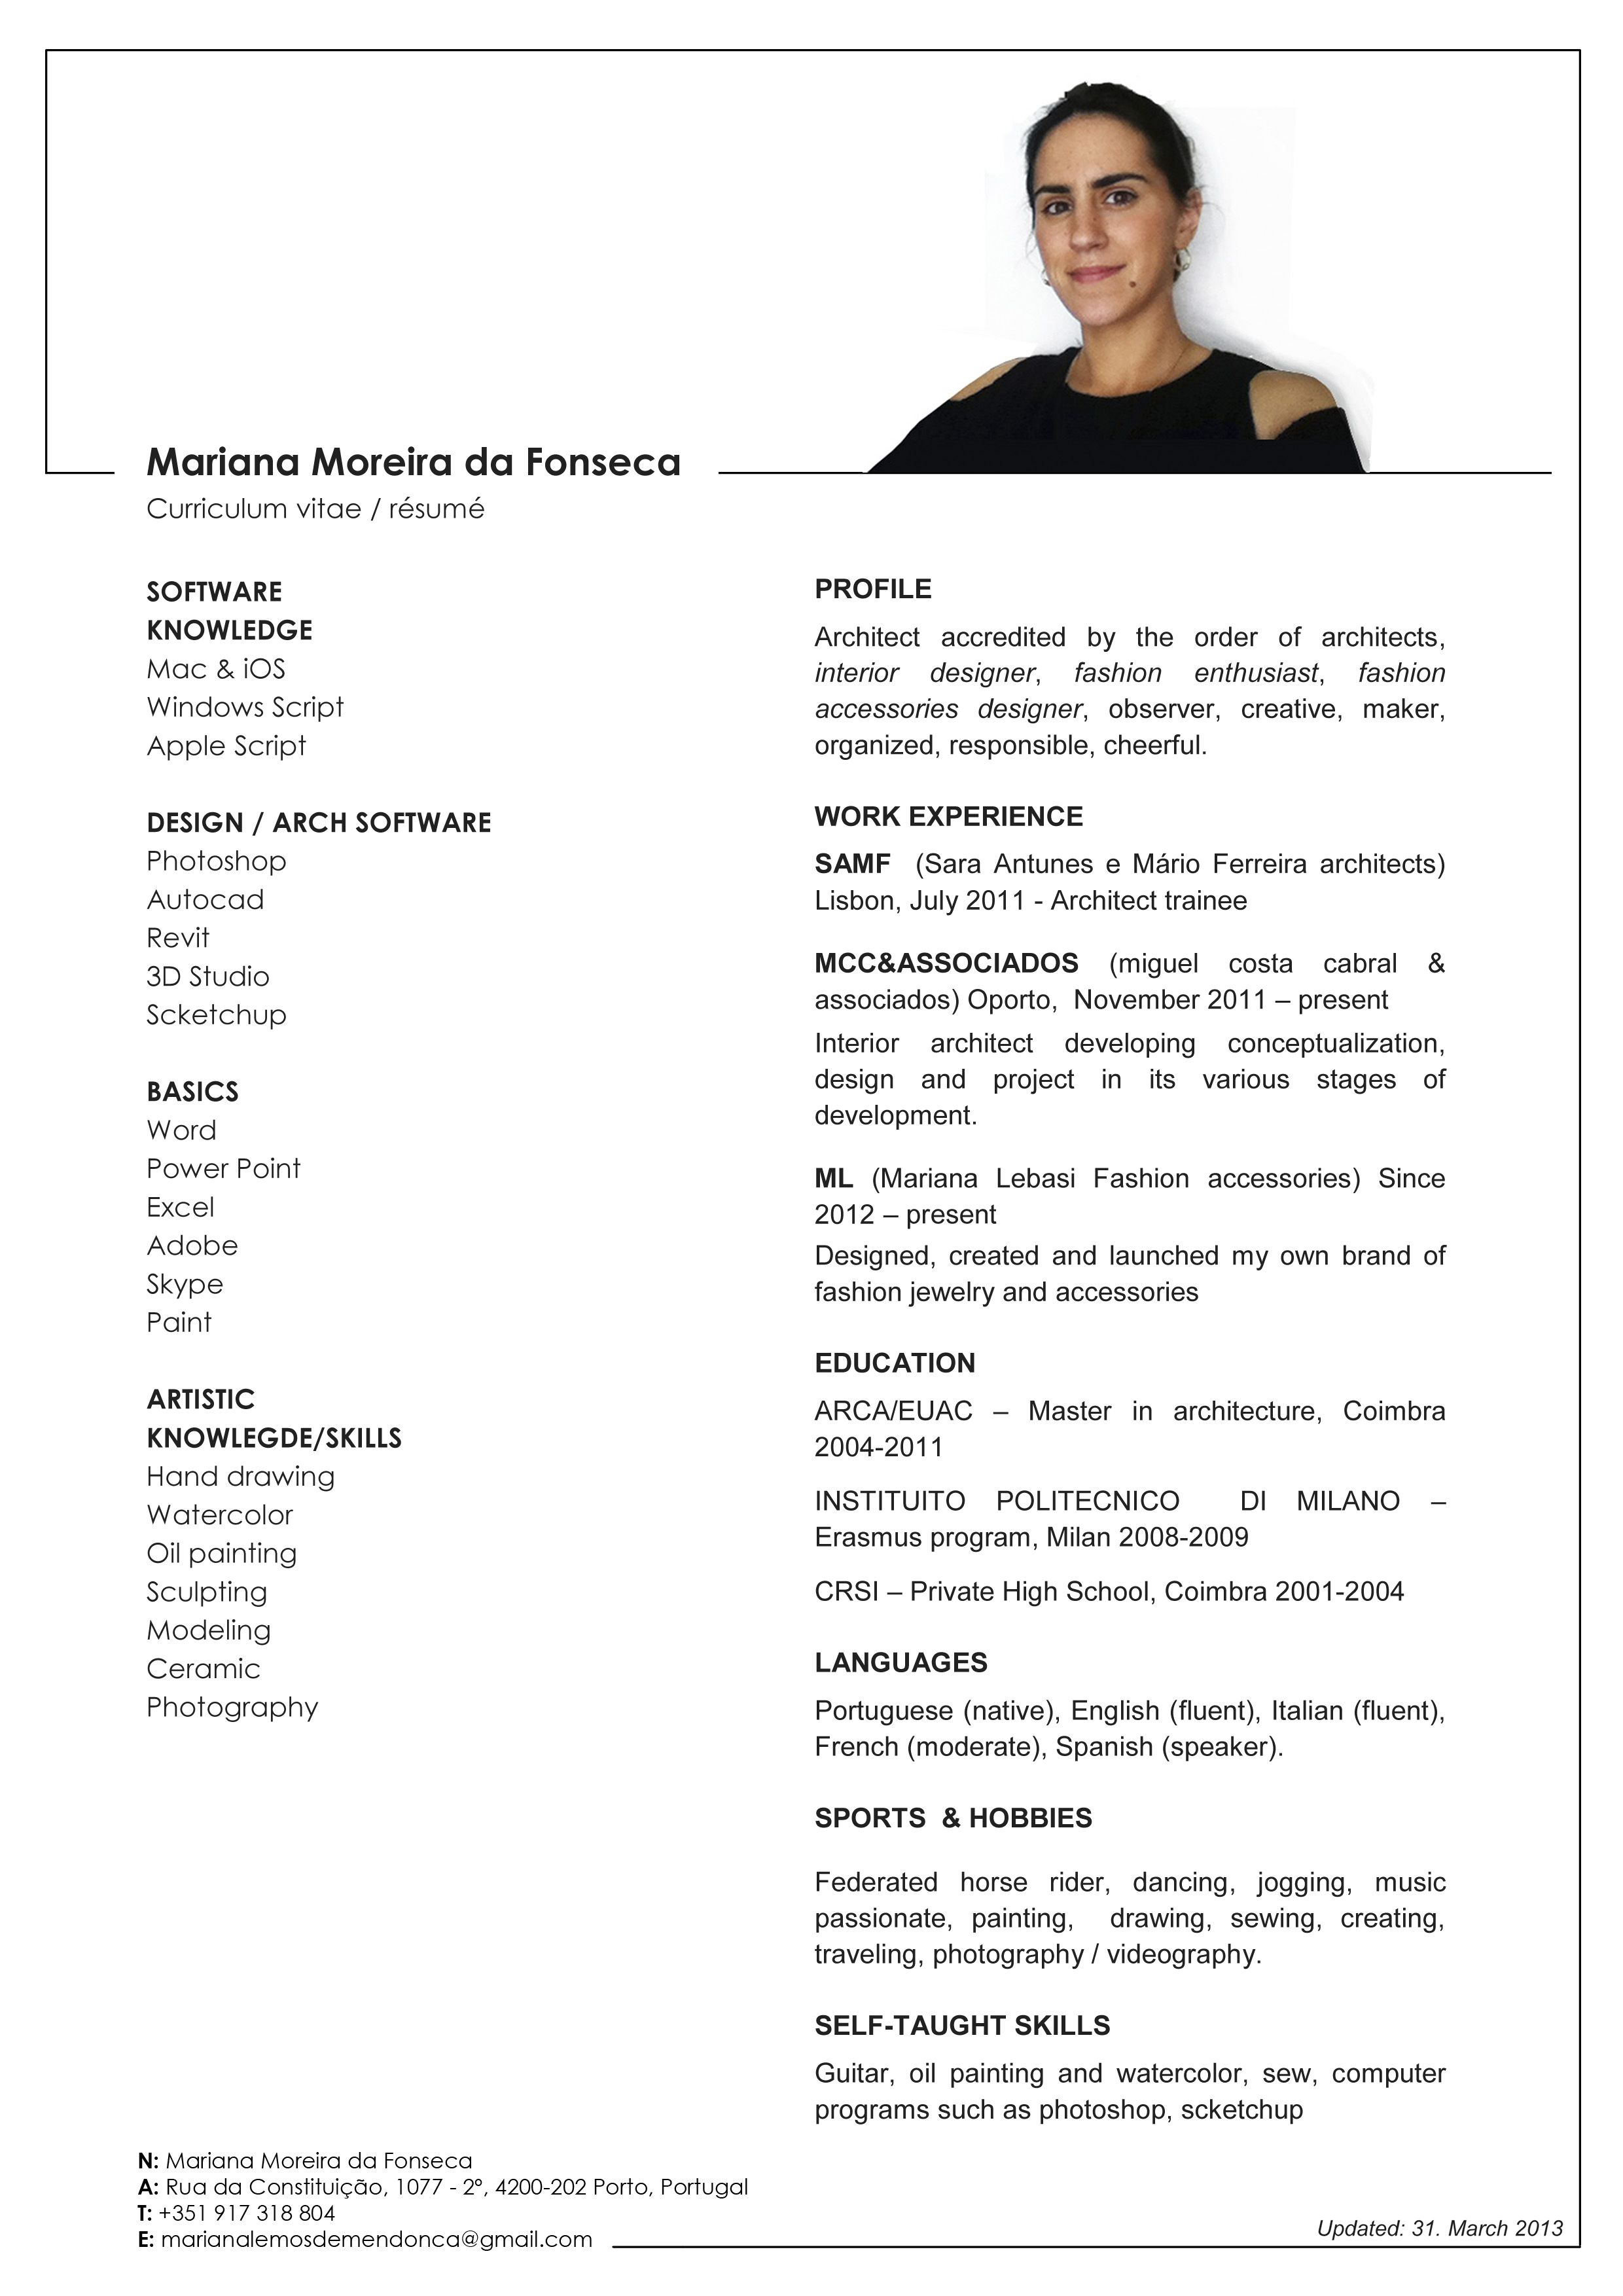 Pin By Firstjob Com On Work Resume Template Free Resume Profile Curriculum Vitae Resume